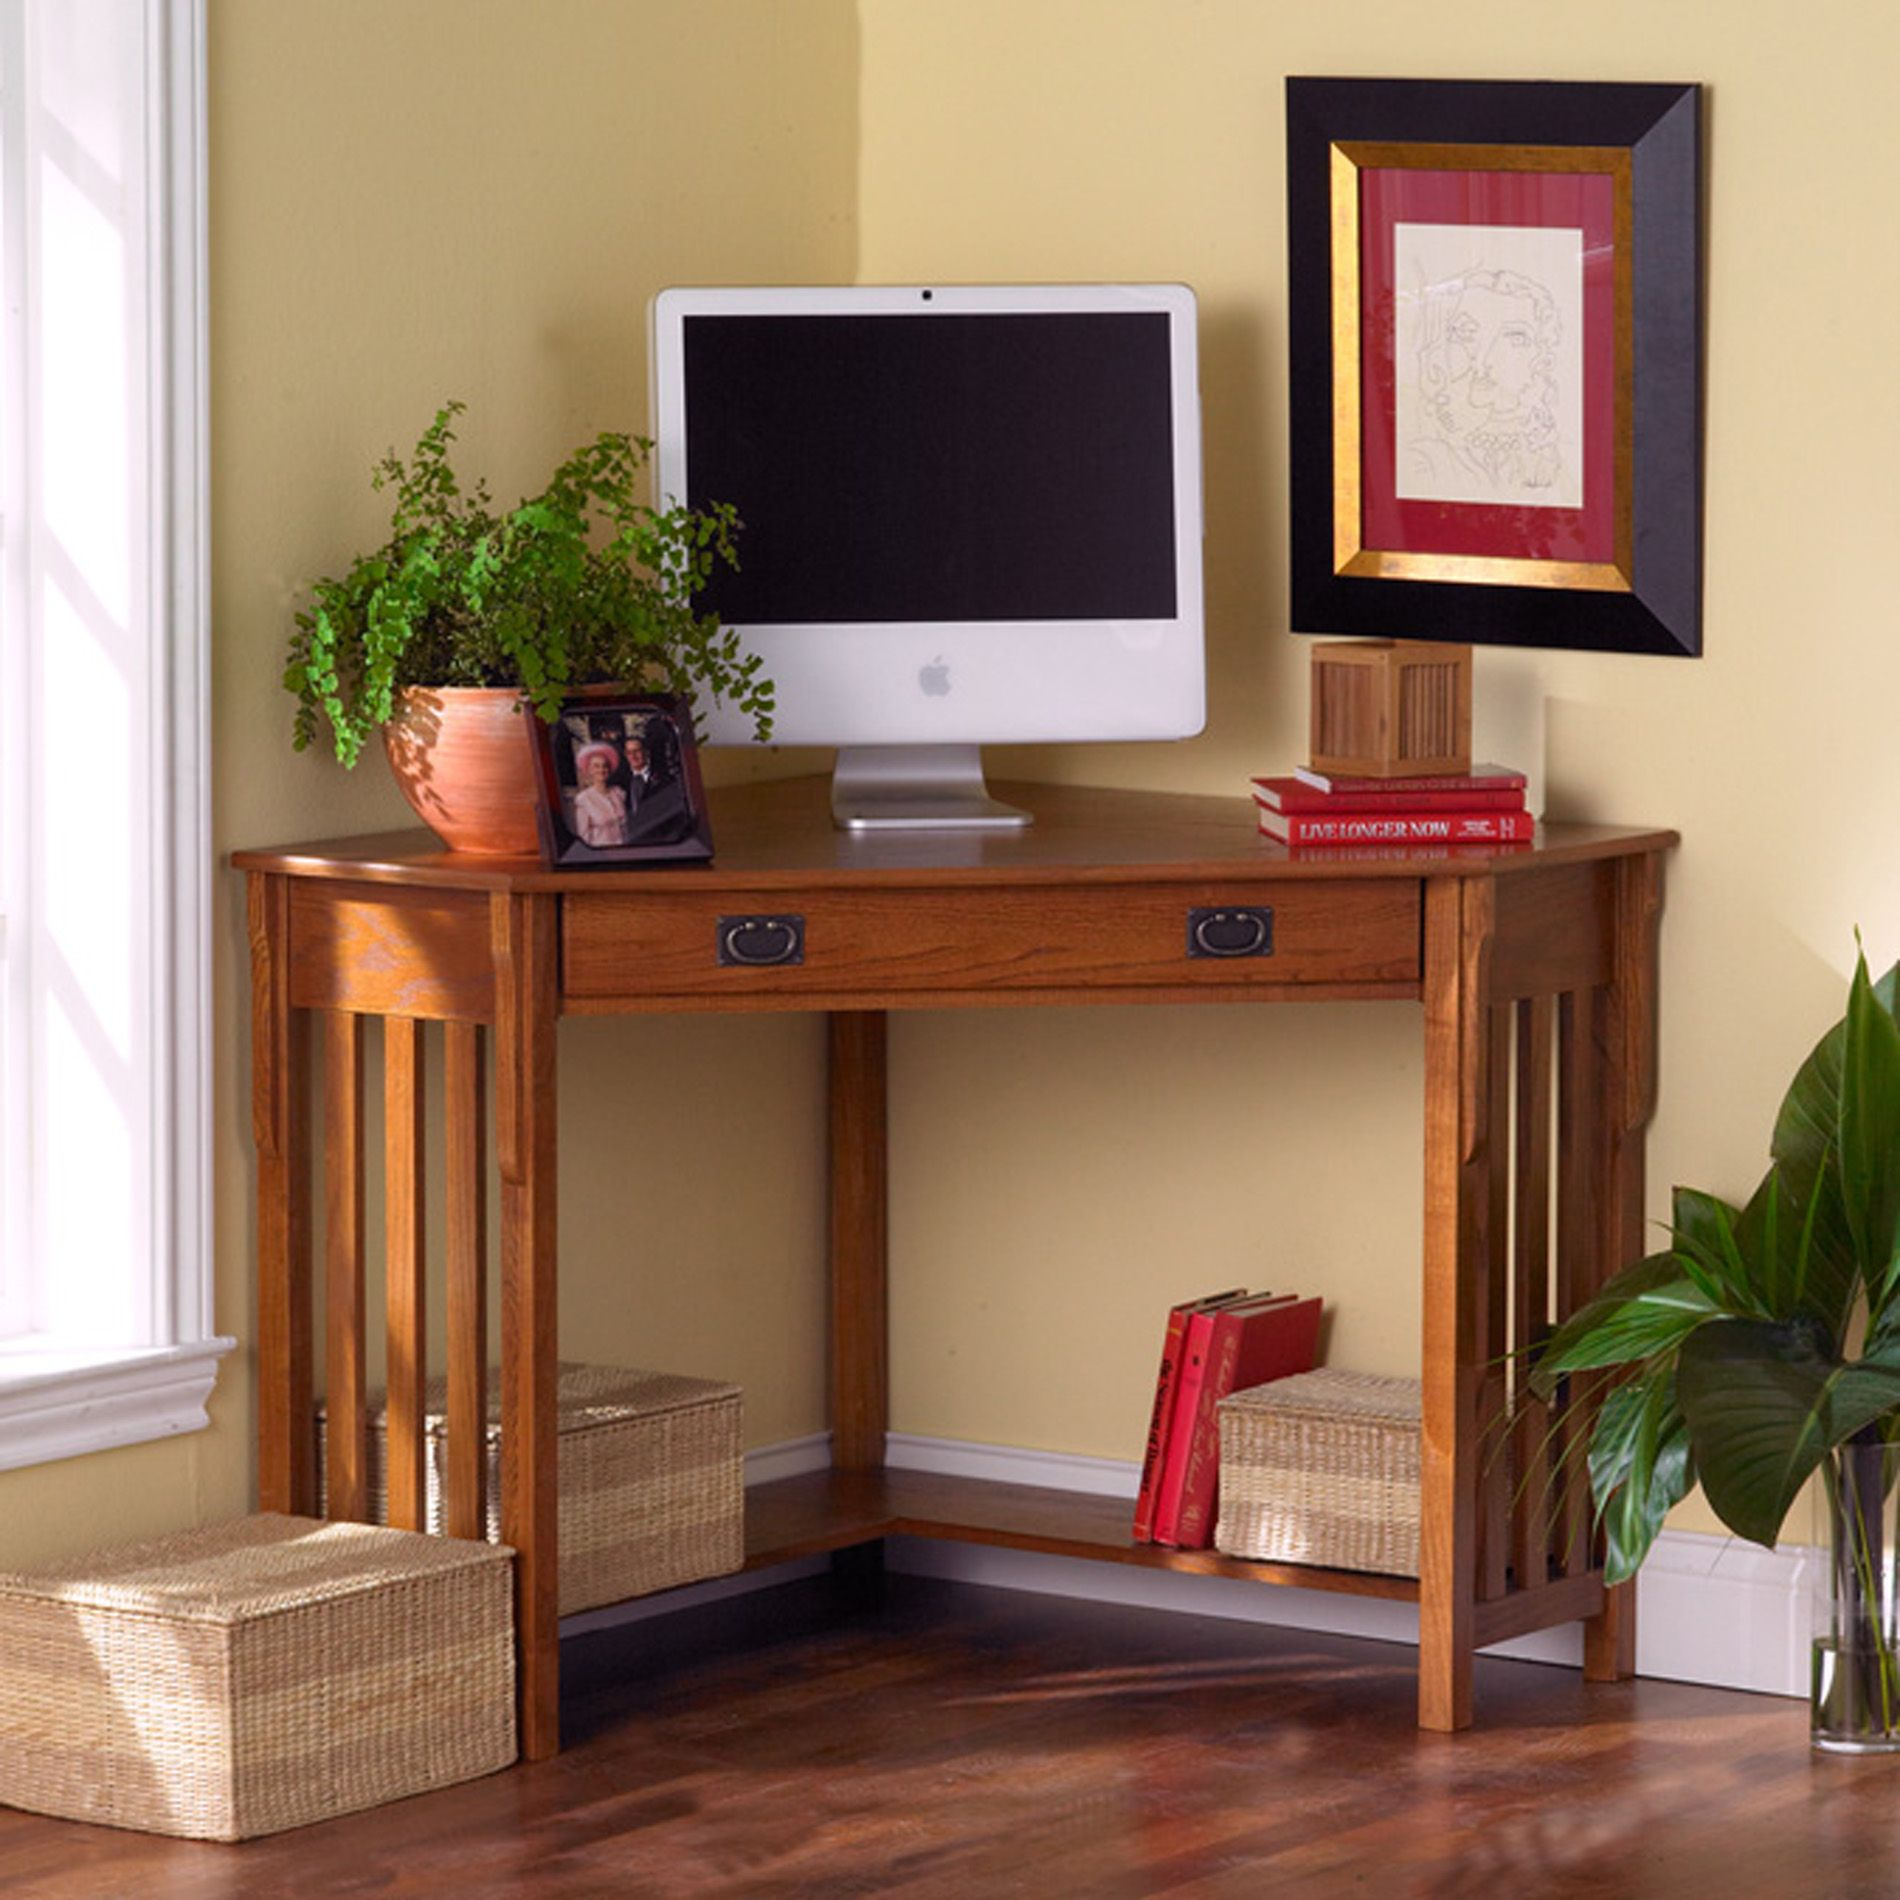 Lavish Office Room Using Brown Wooden Desk For Small Space Near Window